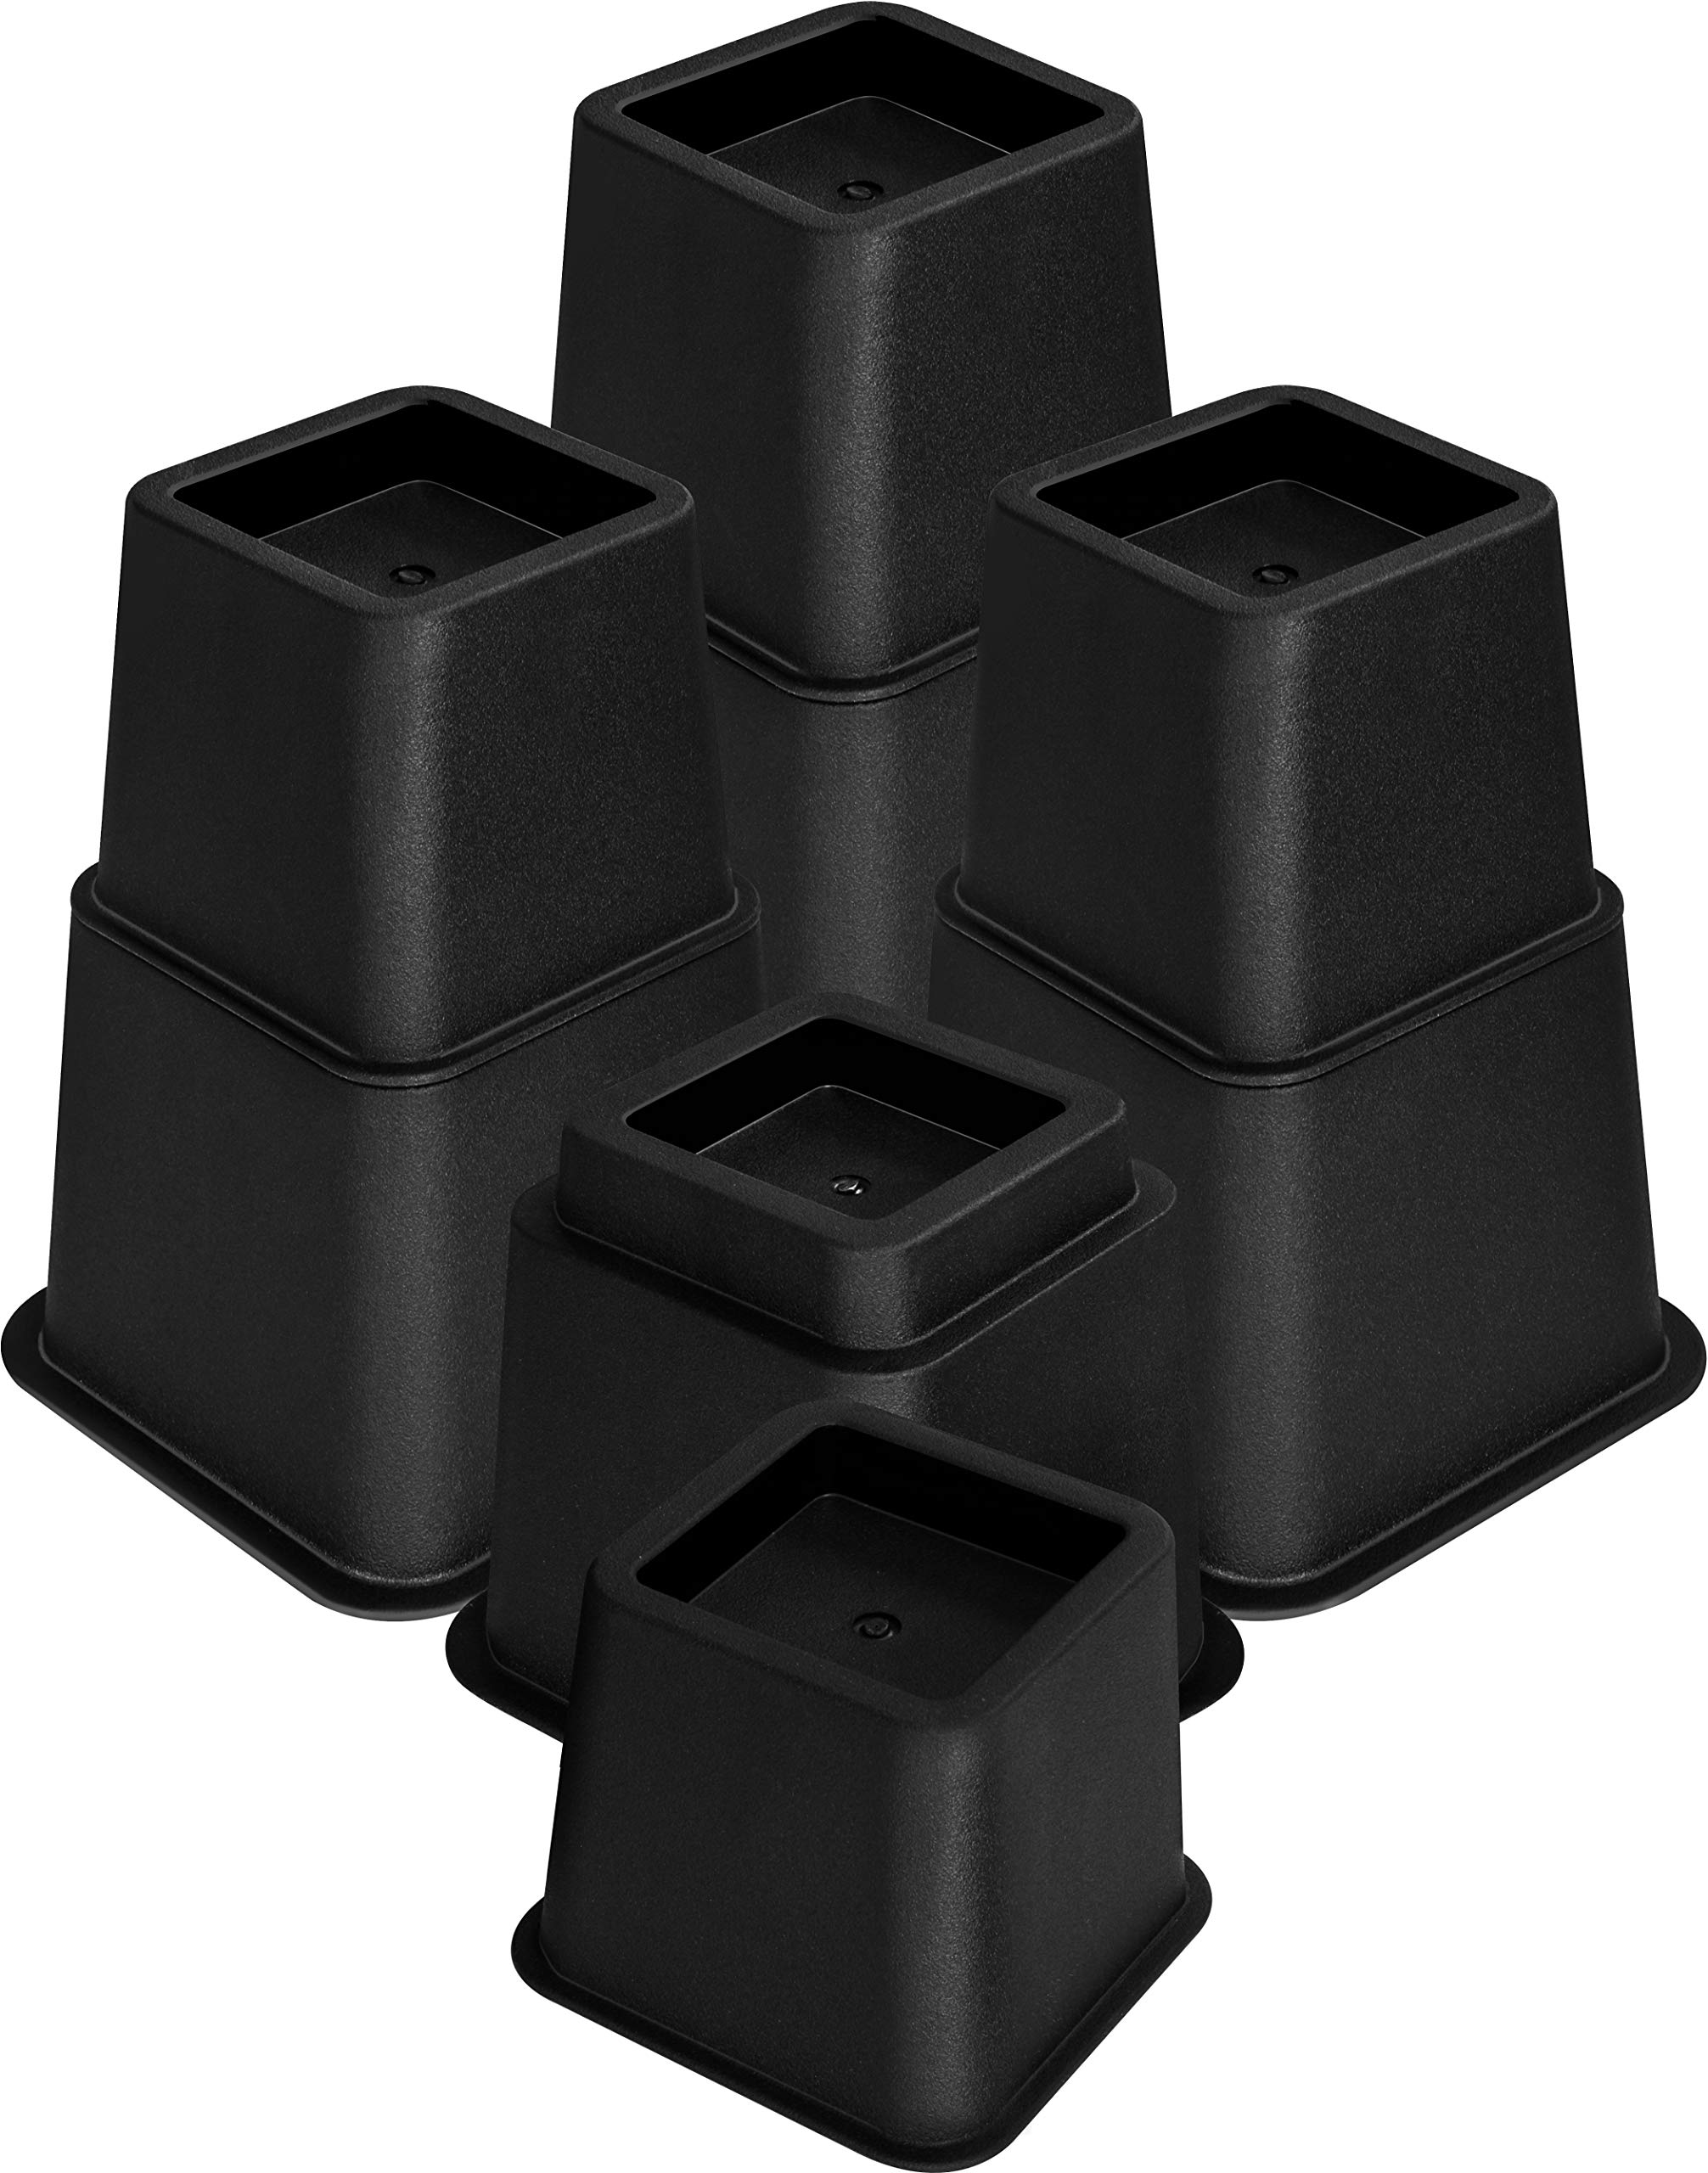 Utopia Bedding Adjustable Bed Furniture Risers - Elevation in Heights 3, 5 or 8 Inch Heavy Duty Risers for Sofa, Table, and Chair - Supports up to 1,300 lbs - (8 Piece Set, Black)